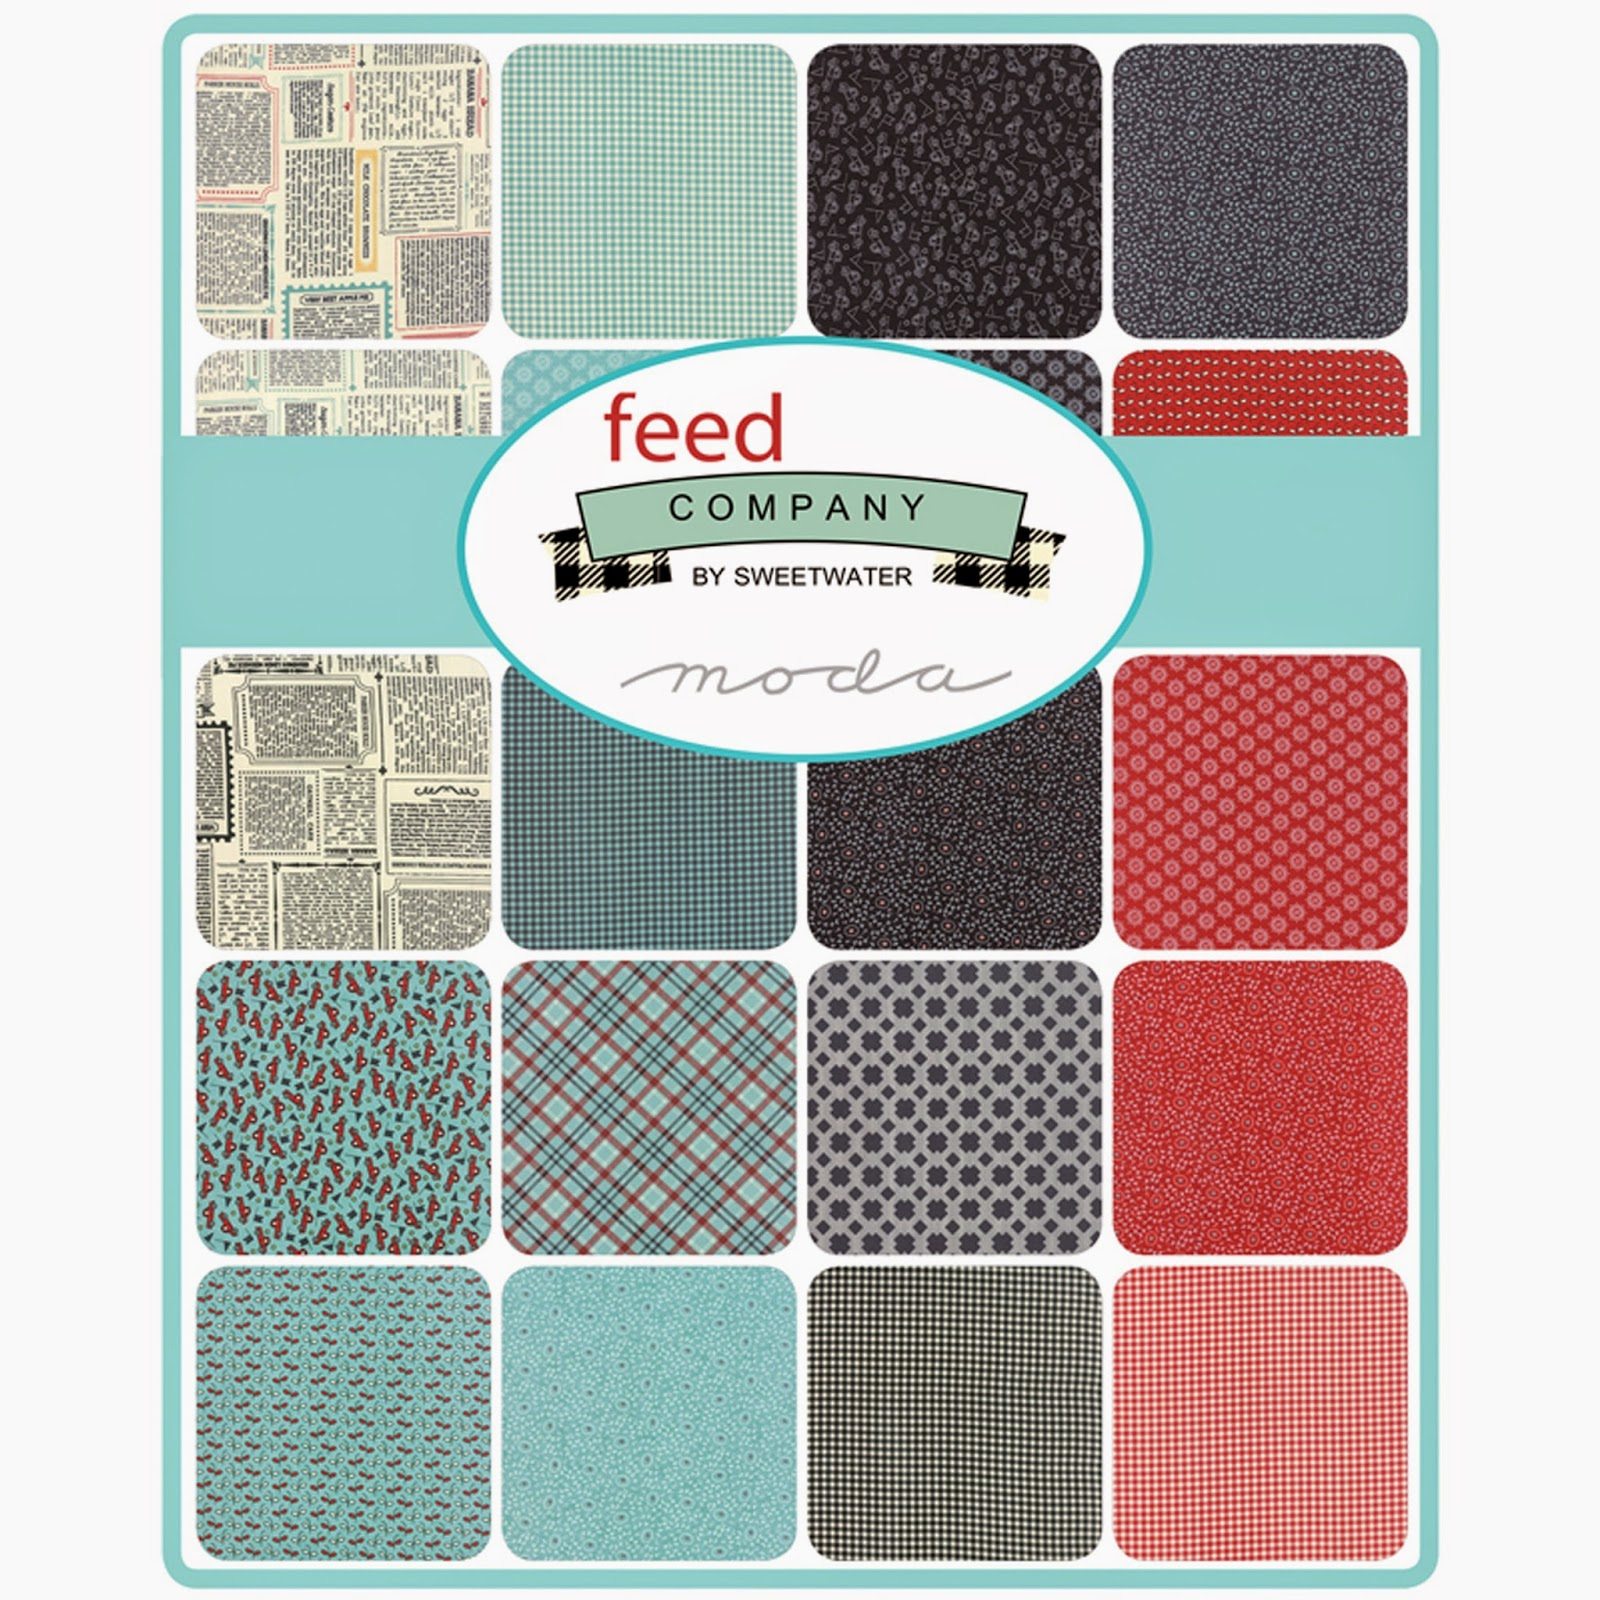 Moda FEED COMPANY Fabric by Sweetwater for Moda Fabrics